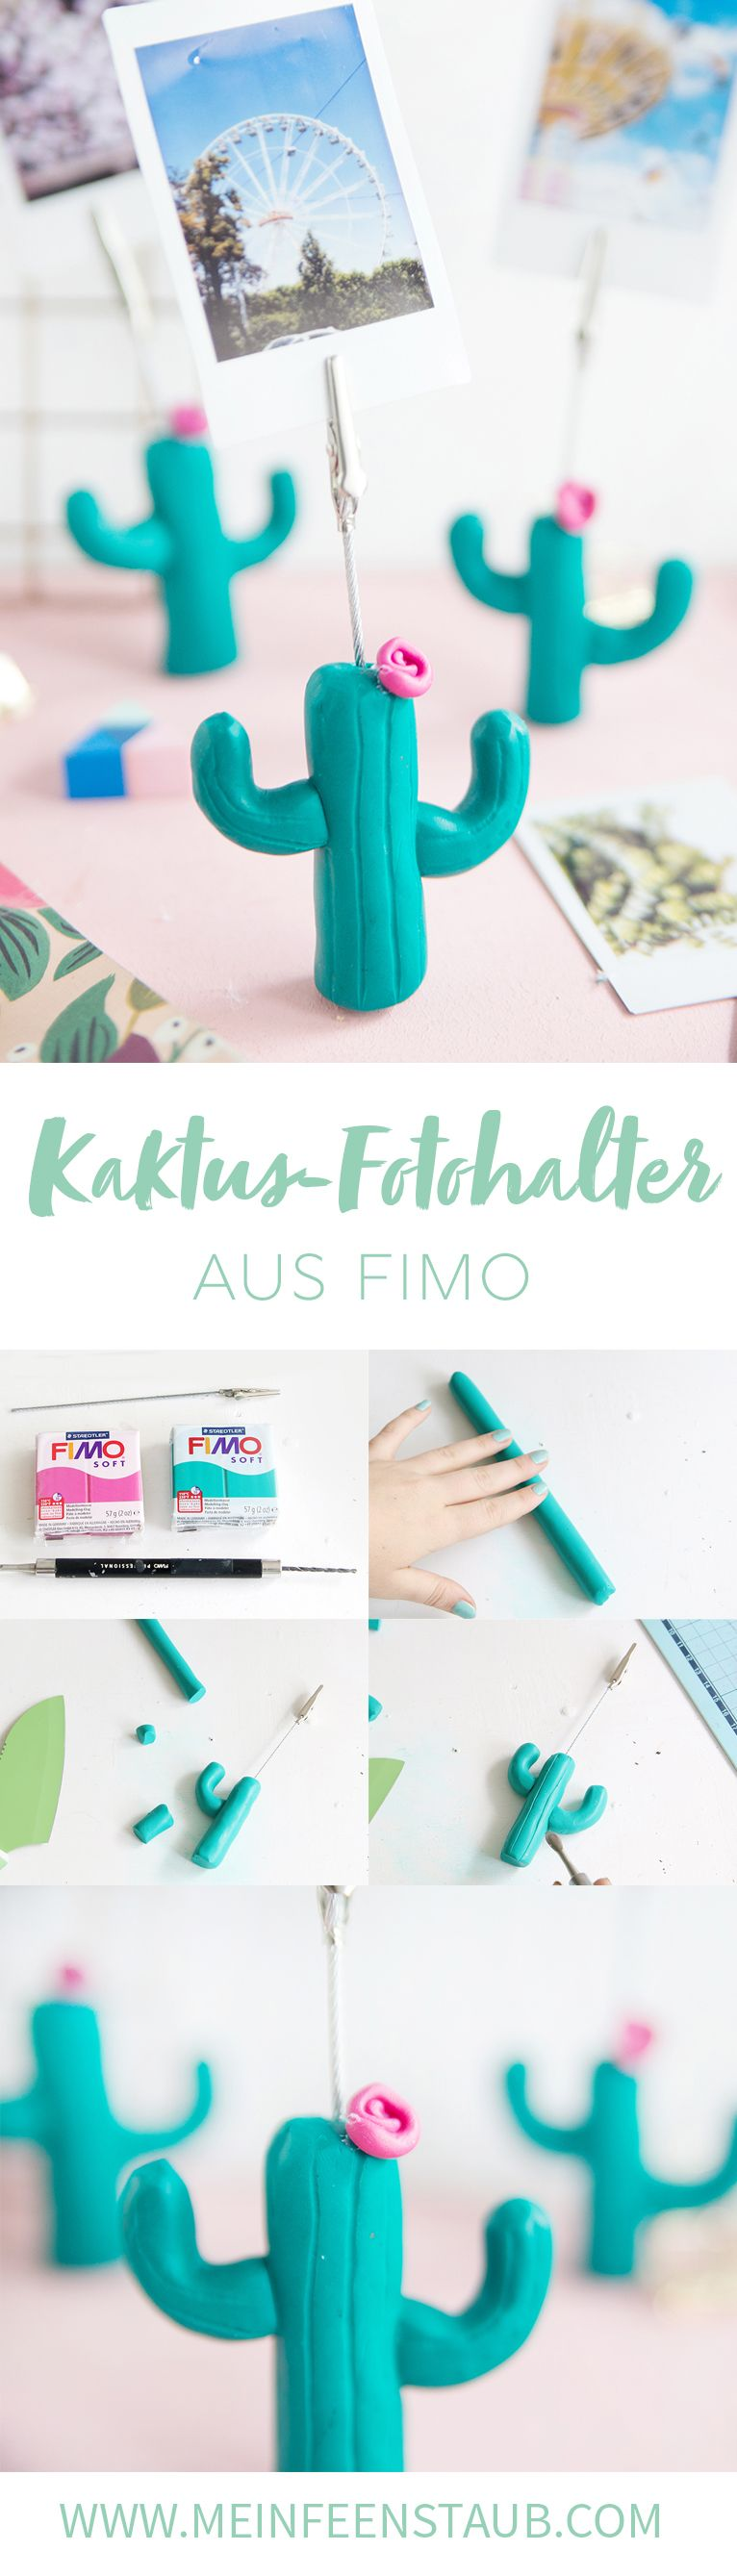 diy kaktus fotohalter aus fimo polymer clay miniature pinterest basteln geschenke und. Black Bedroom Furniture Sets. Home Design Ideas